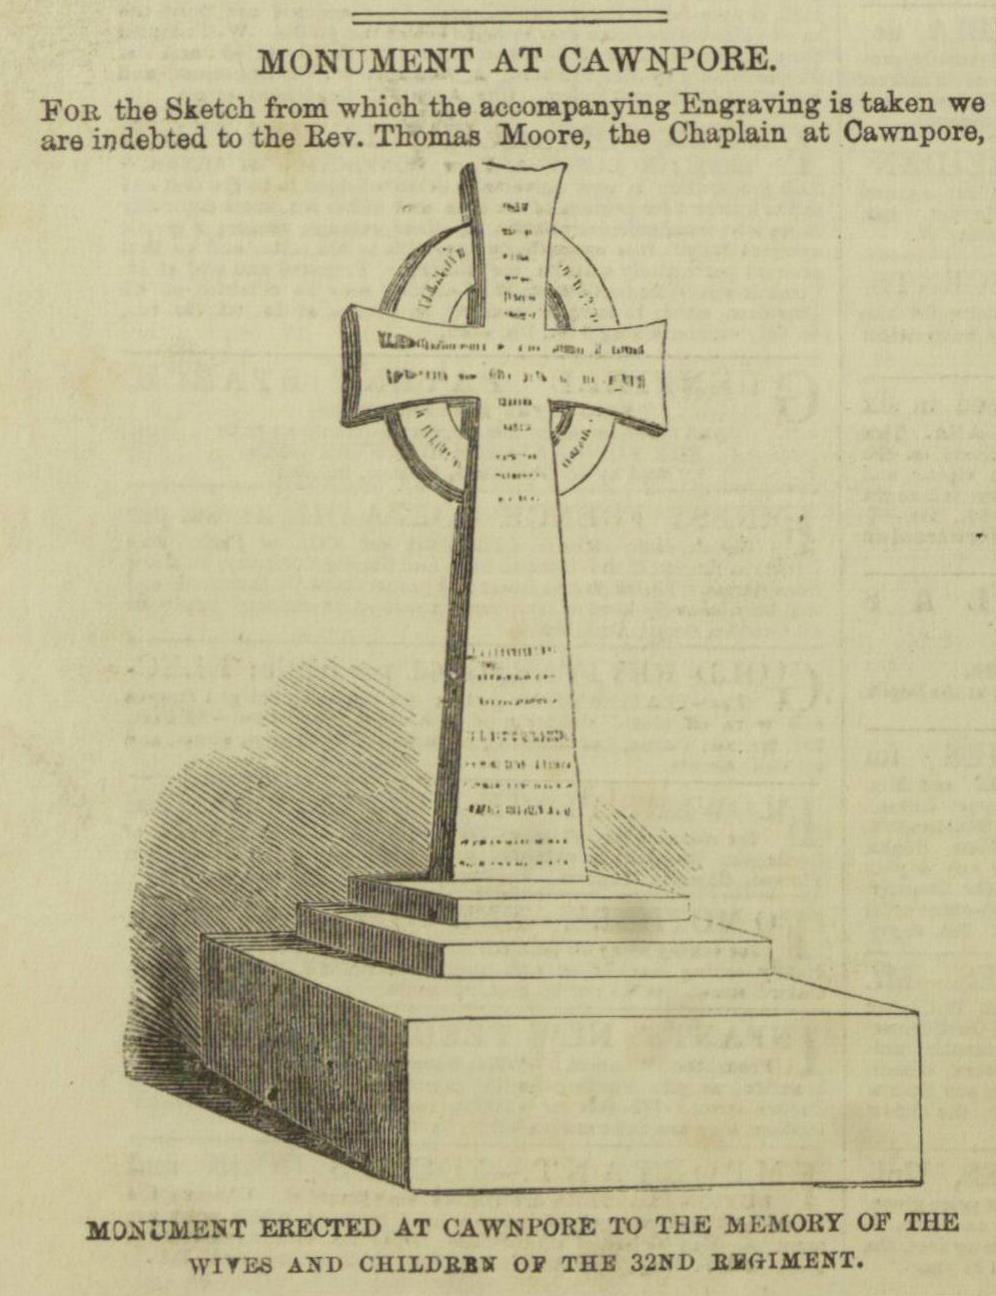 'Monument at Cawnpore', Illustrated London News, 27 March 1858, p. 332.